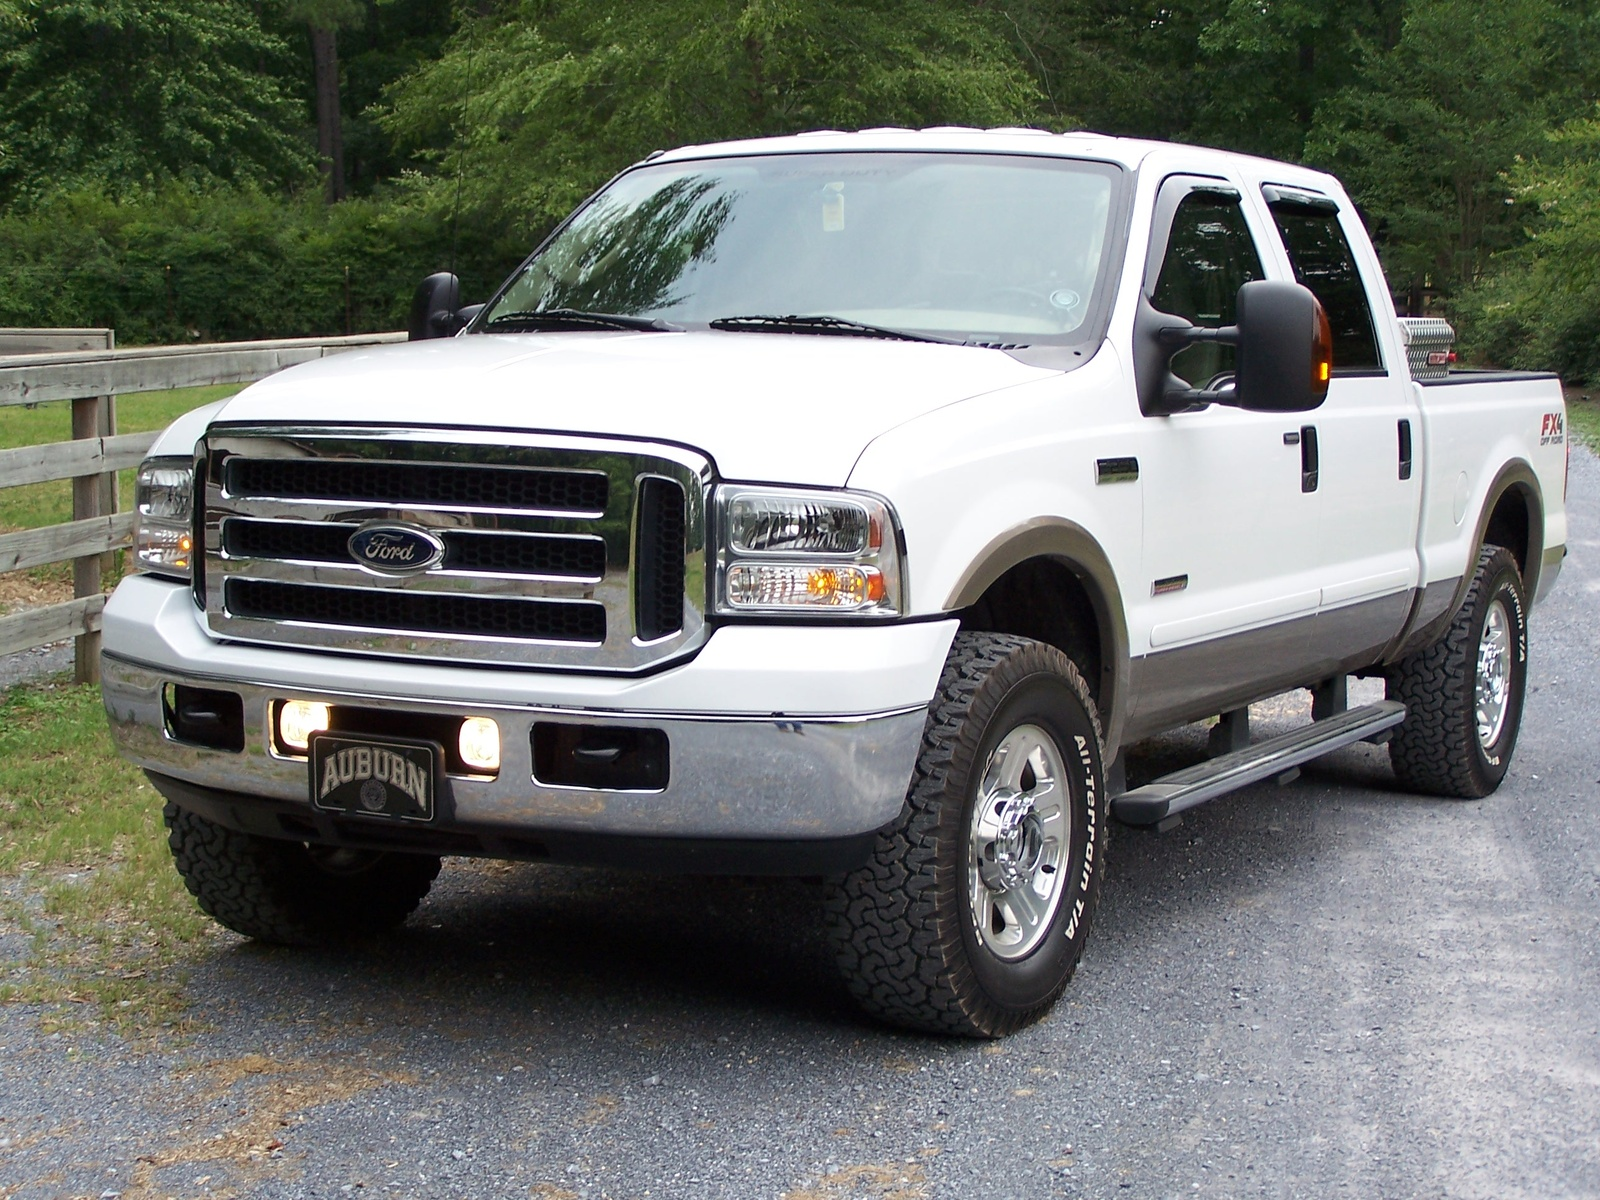 Ford F-250 Super Duty 2007 #8